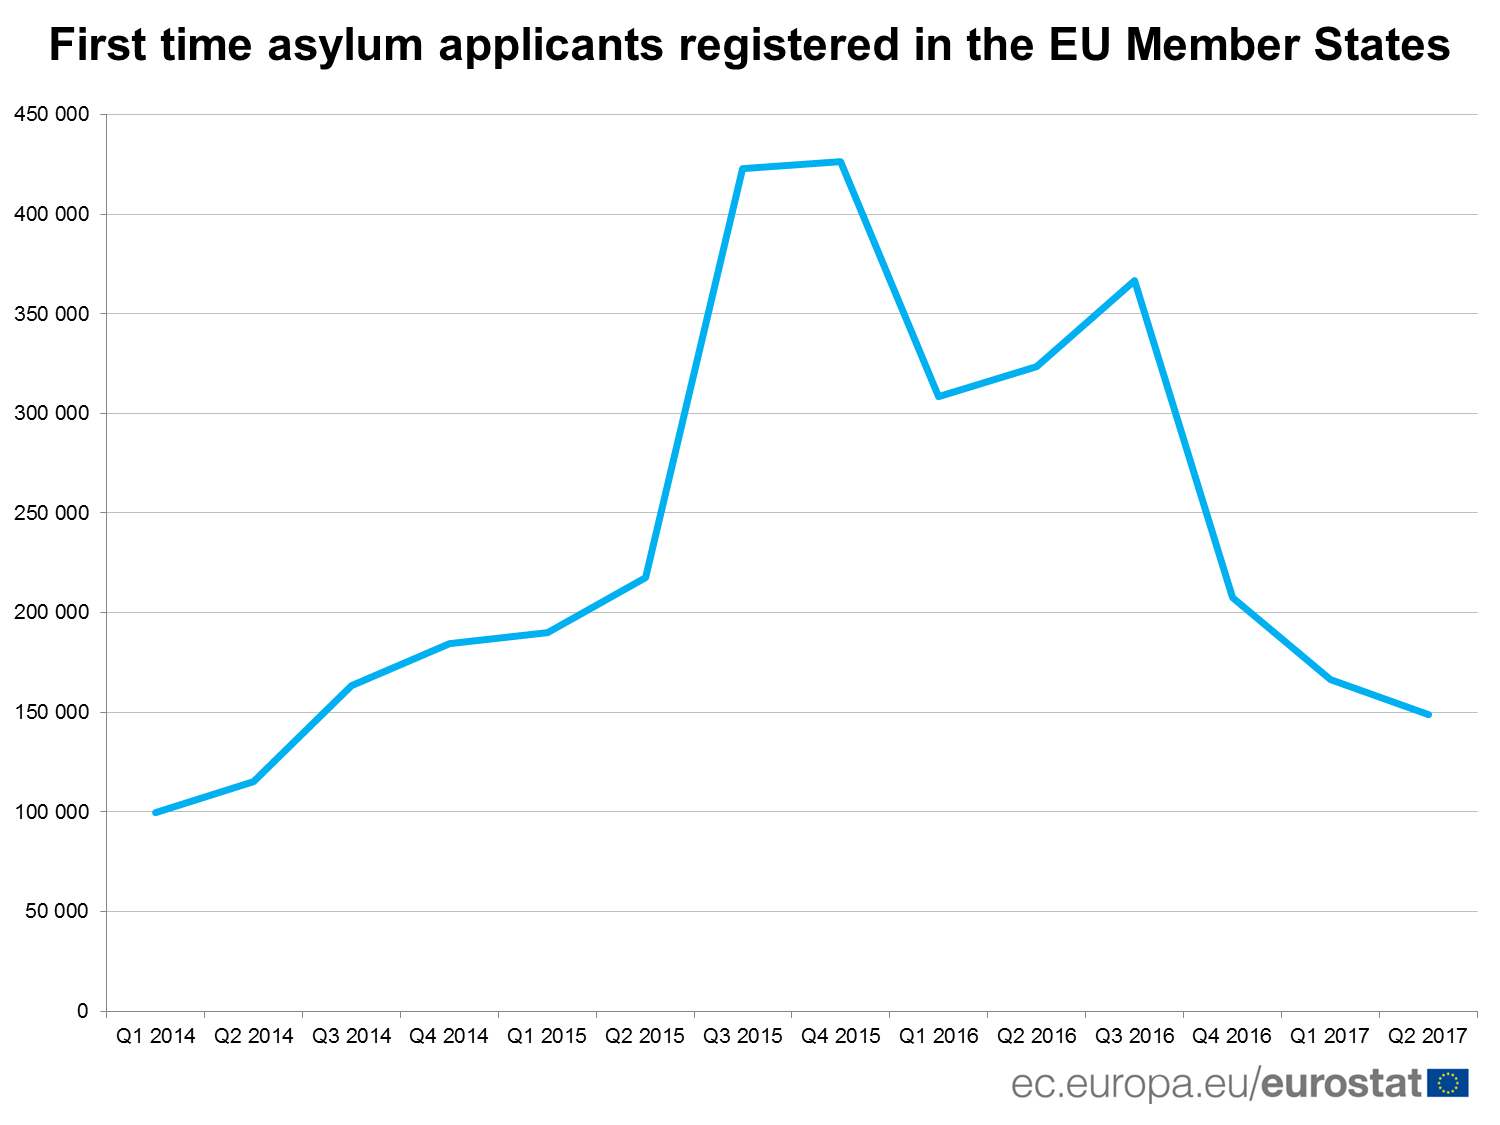 First time asylum applicants registered in the EU Member States